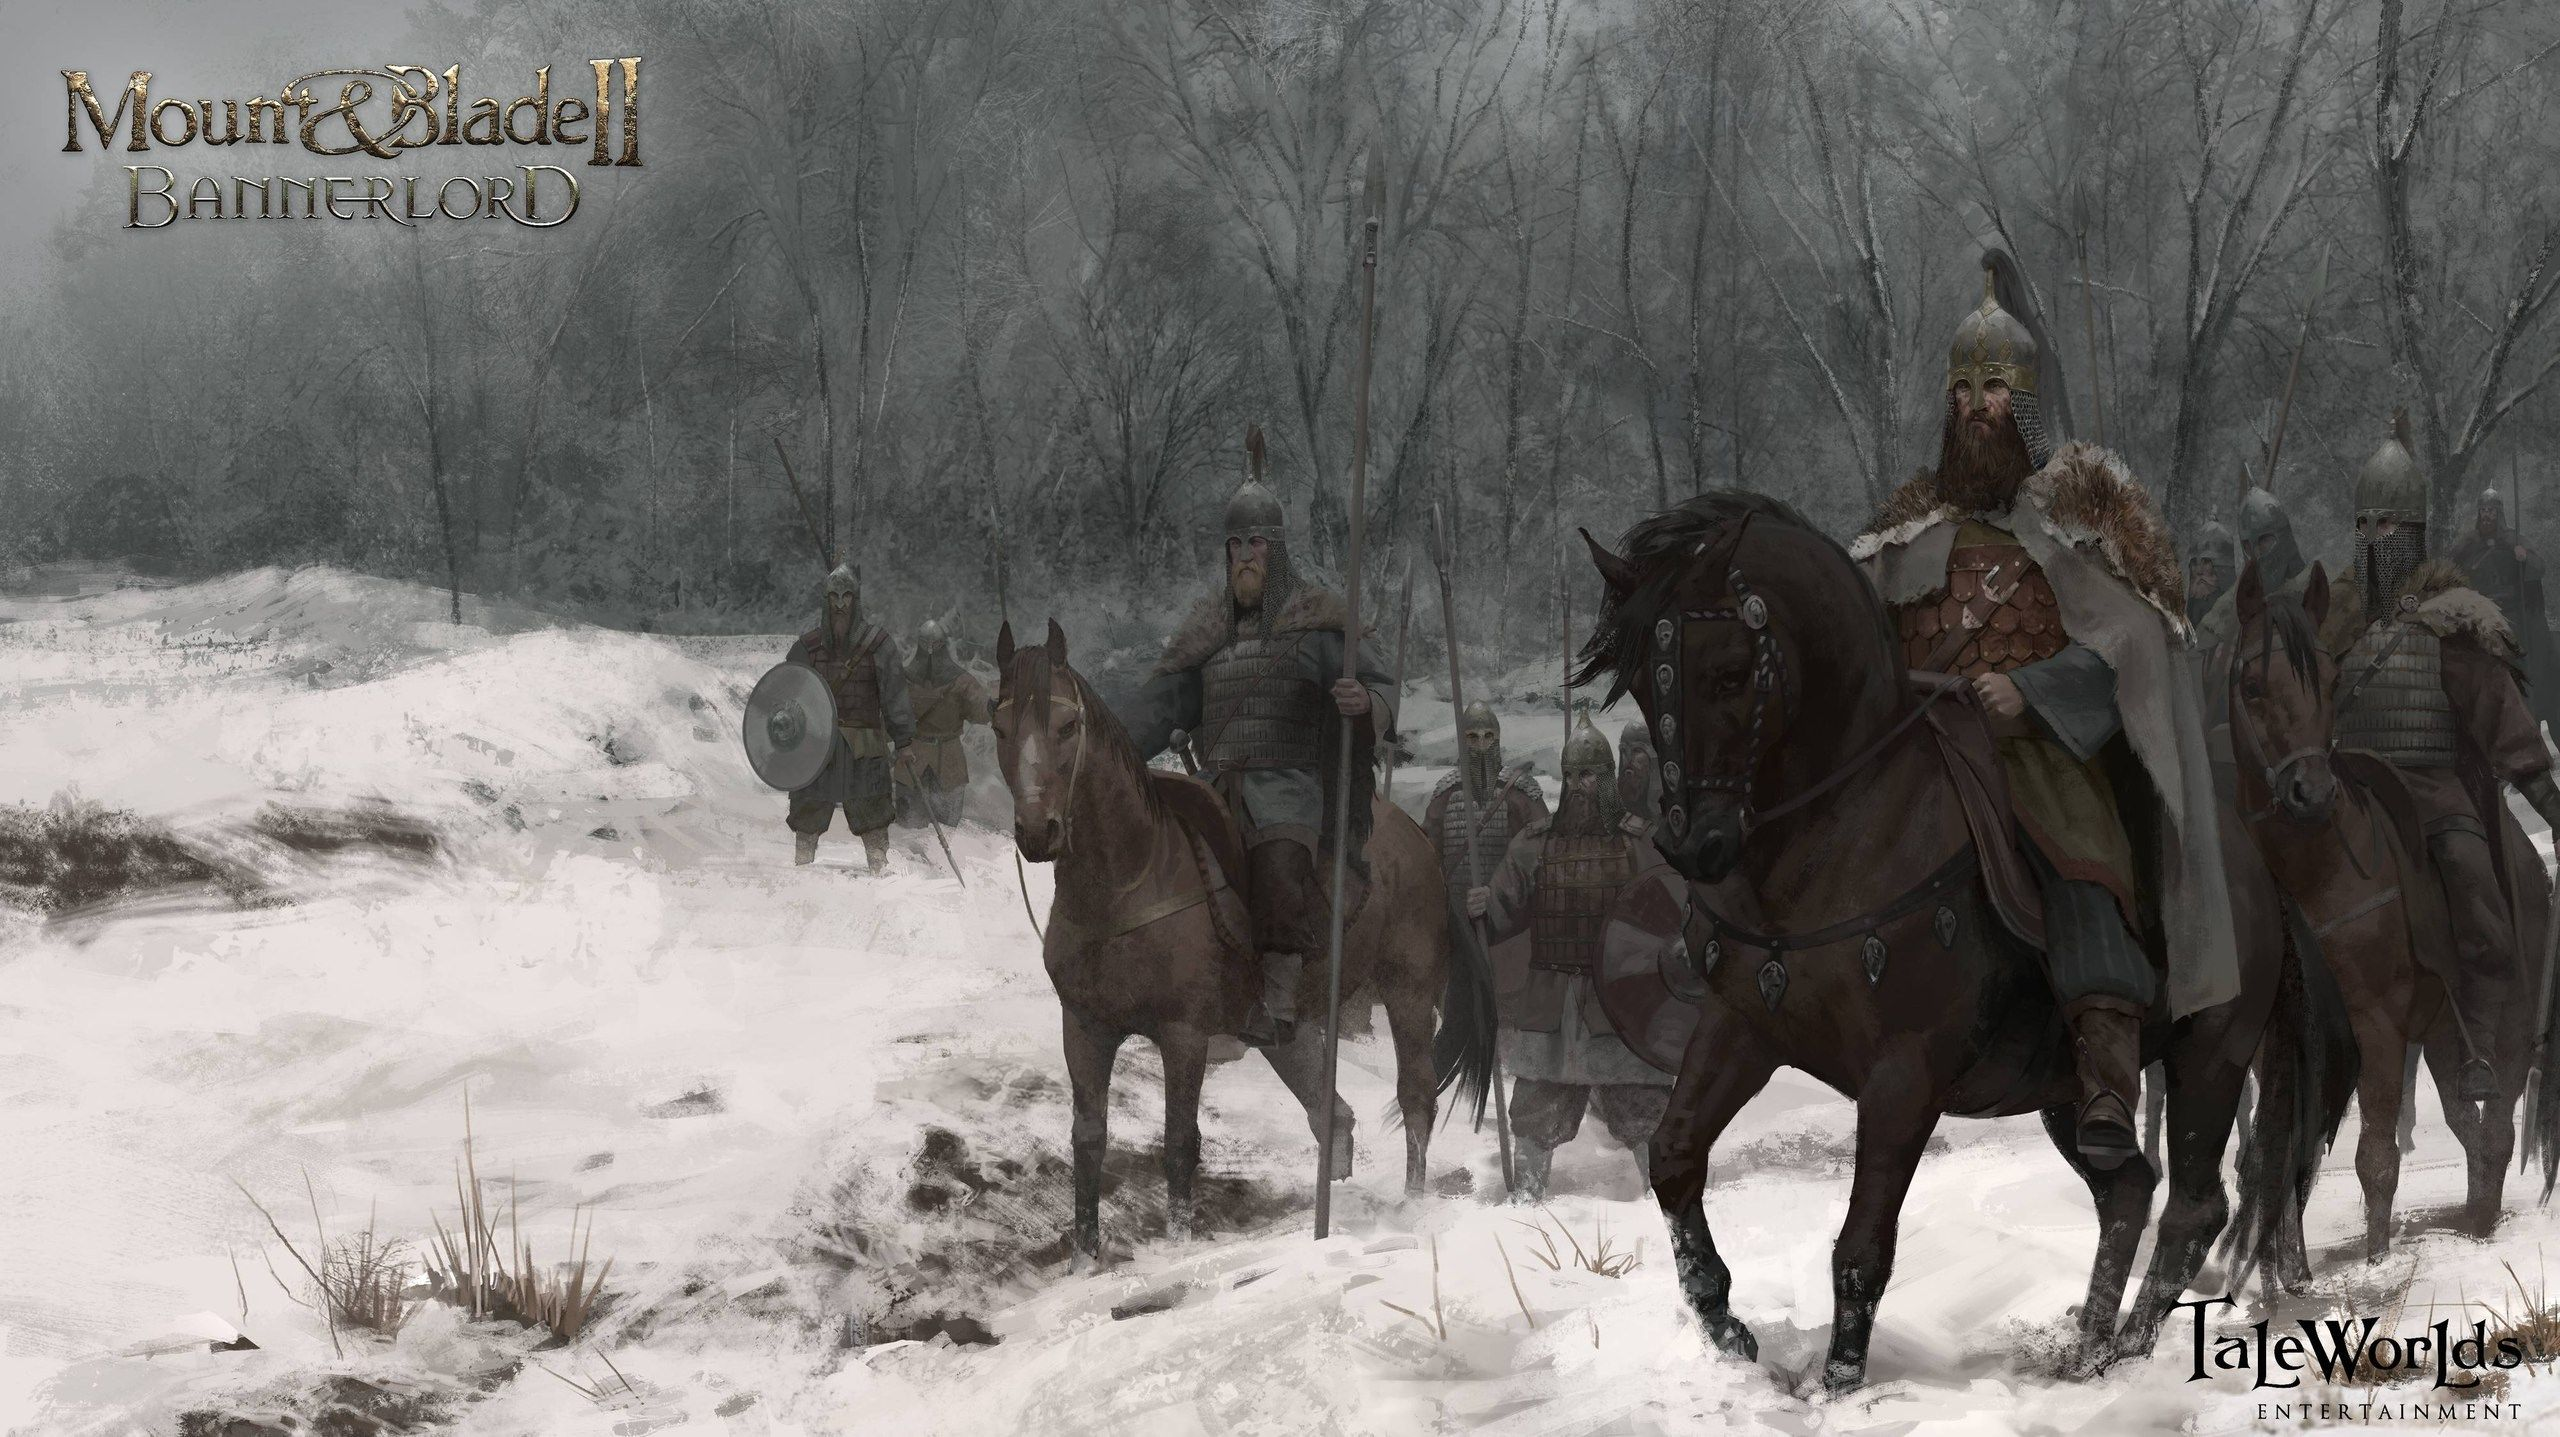 2560x1437 Free High Resolution Wallpaper Mount And Blade Ii